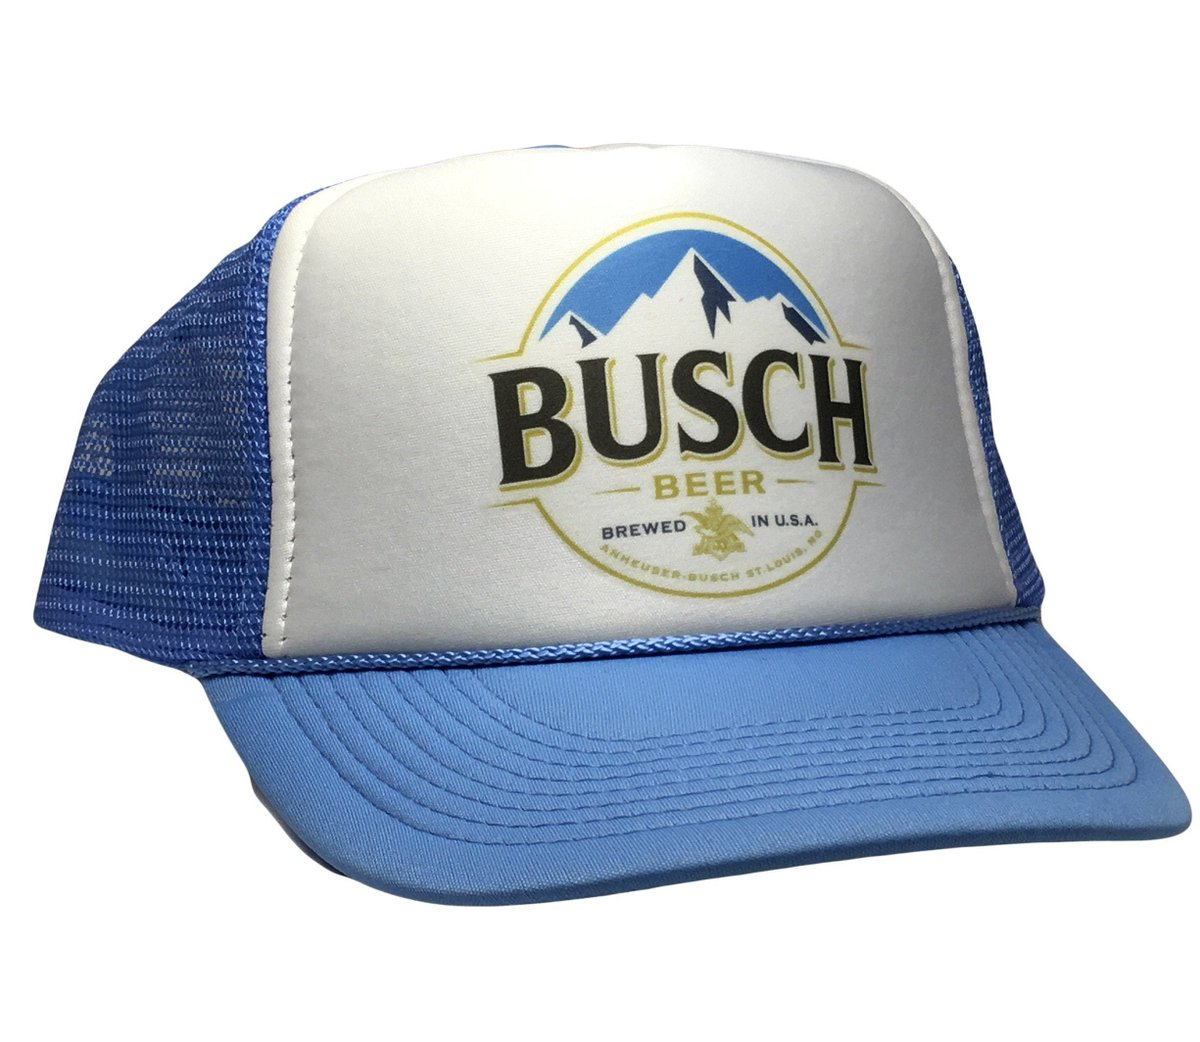 Excited to share the latest addition to my #etsy shop: Vintage Busch Beer Hat NASCAR Trucker 80s Mesh Cap Snap Back adjustable light blue New  #blue #birthday #christmas #white #preppy #truckerhat #snapbackhat #vintagehat #funnyhat